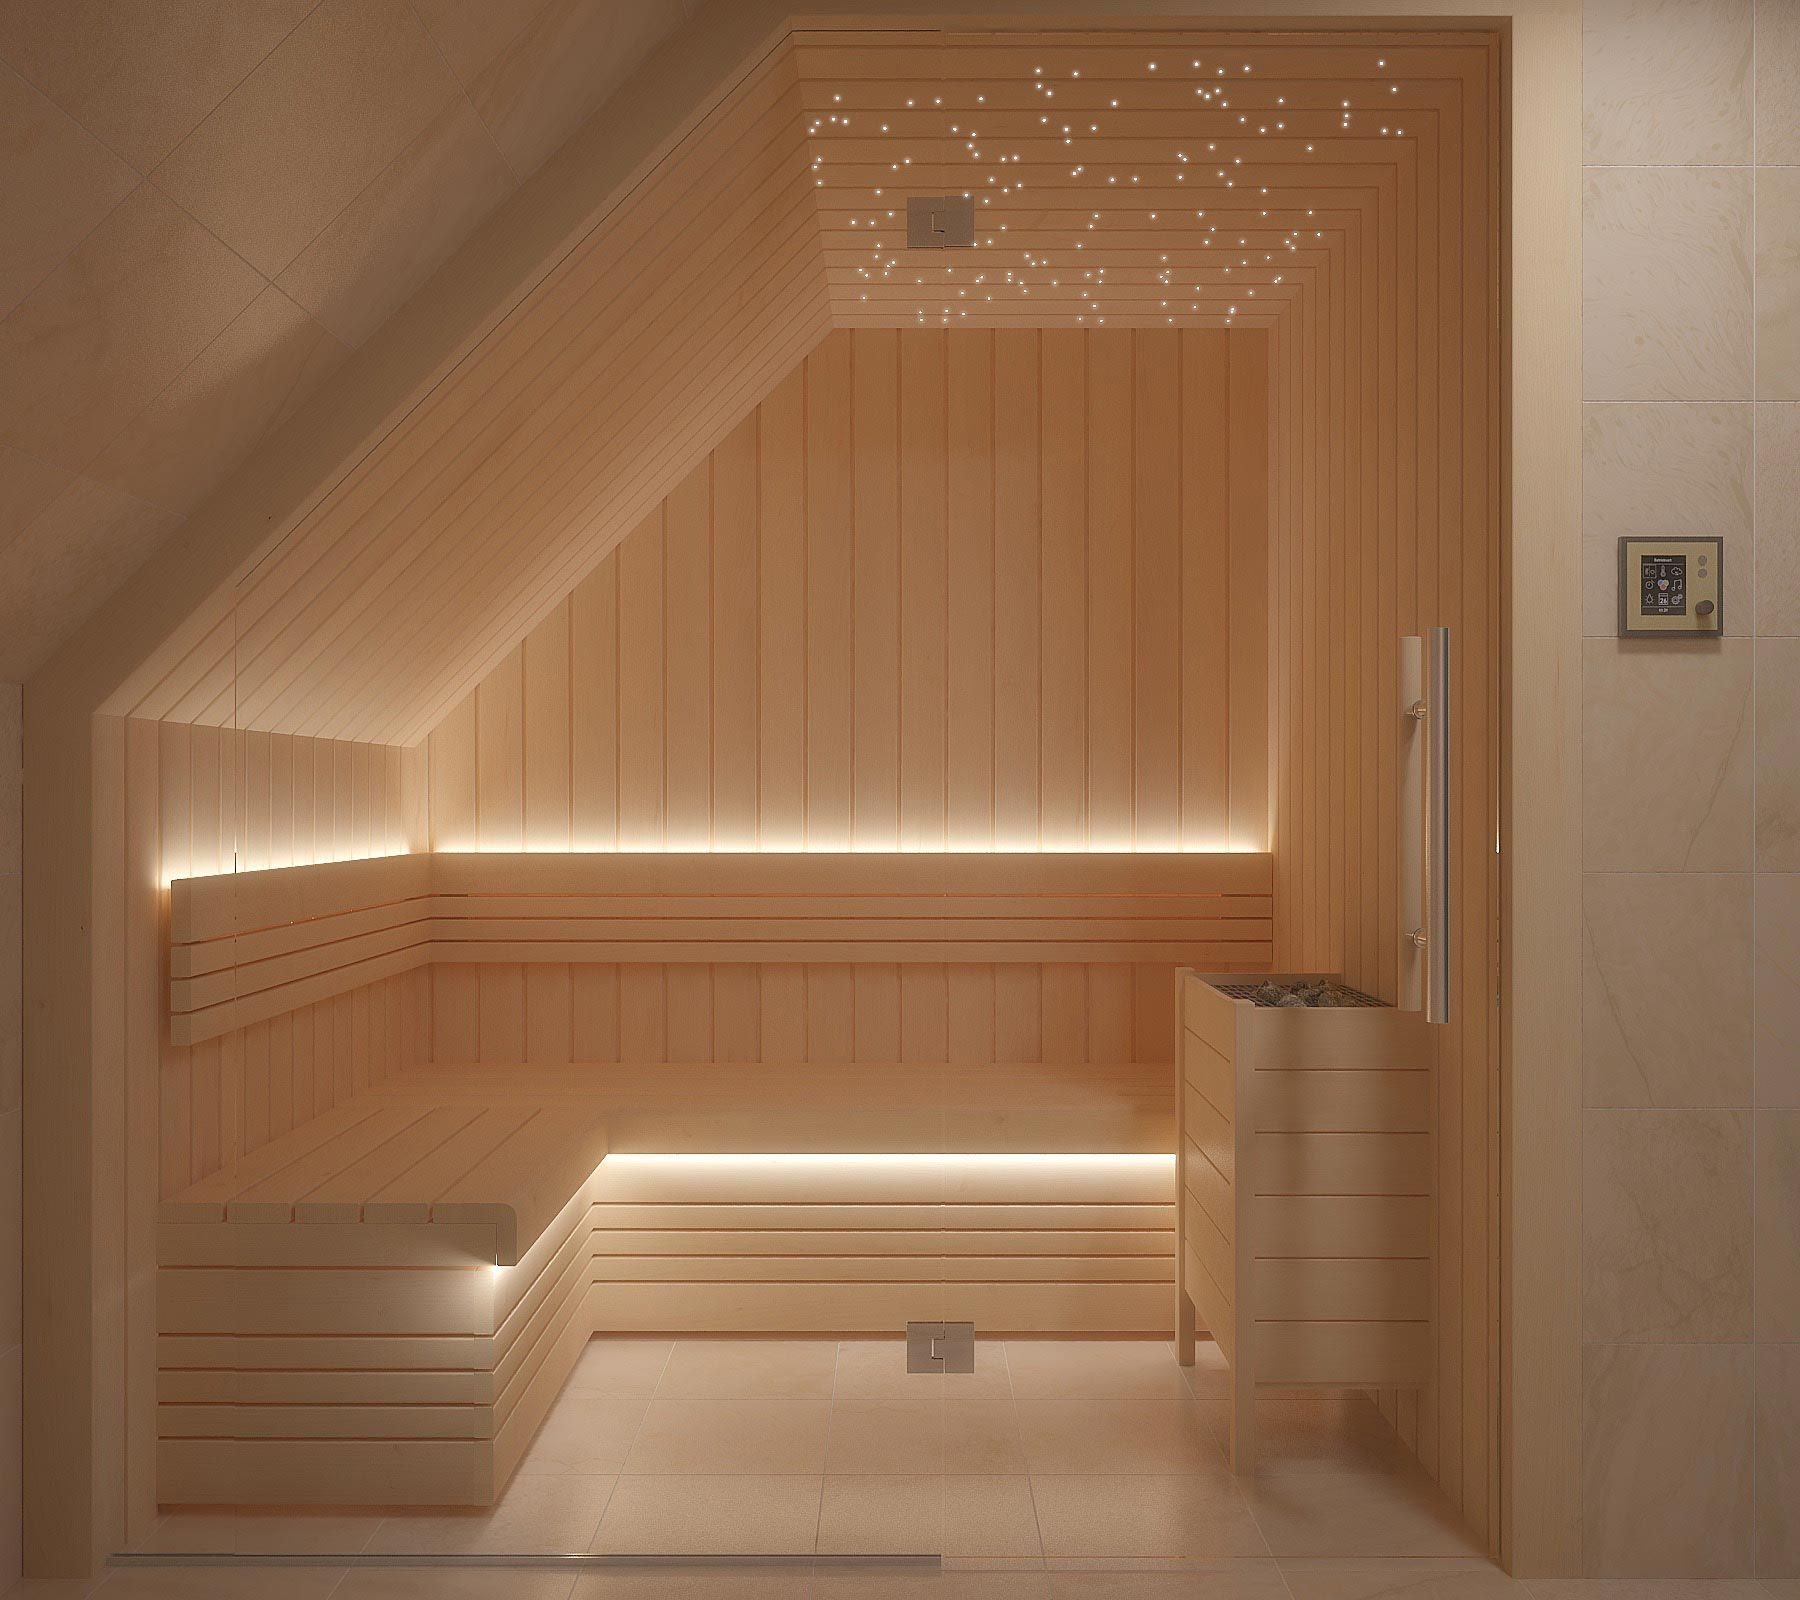 Nordic Sauna Lighting & Nordic Sauna Lighting | Edustustila | Pinterest | Saunas Lights ... azcodes.com